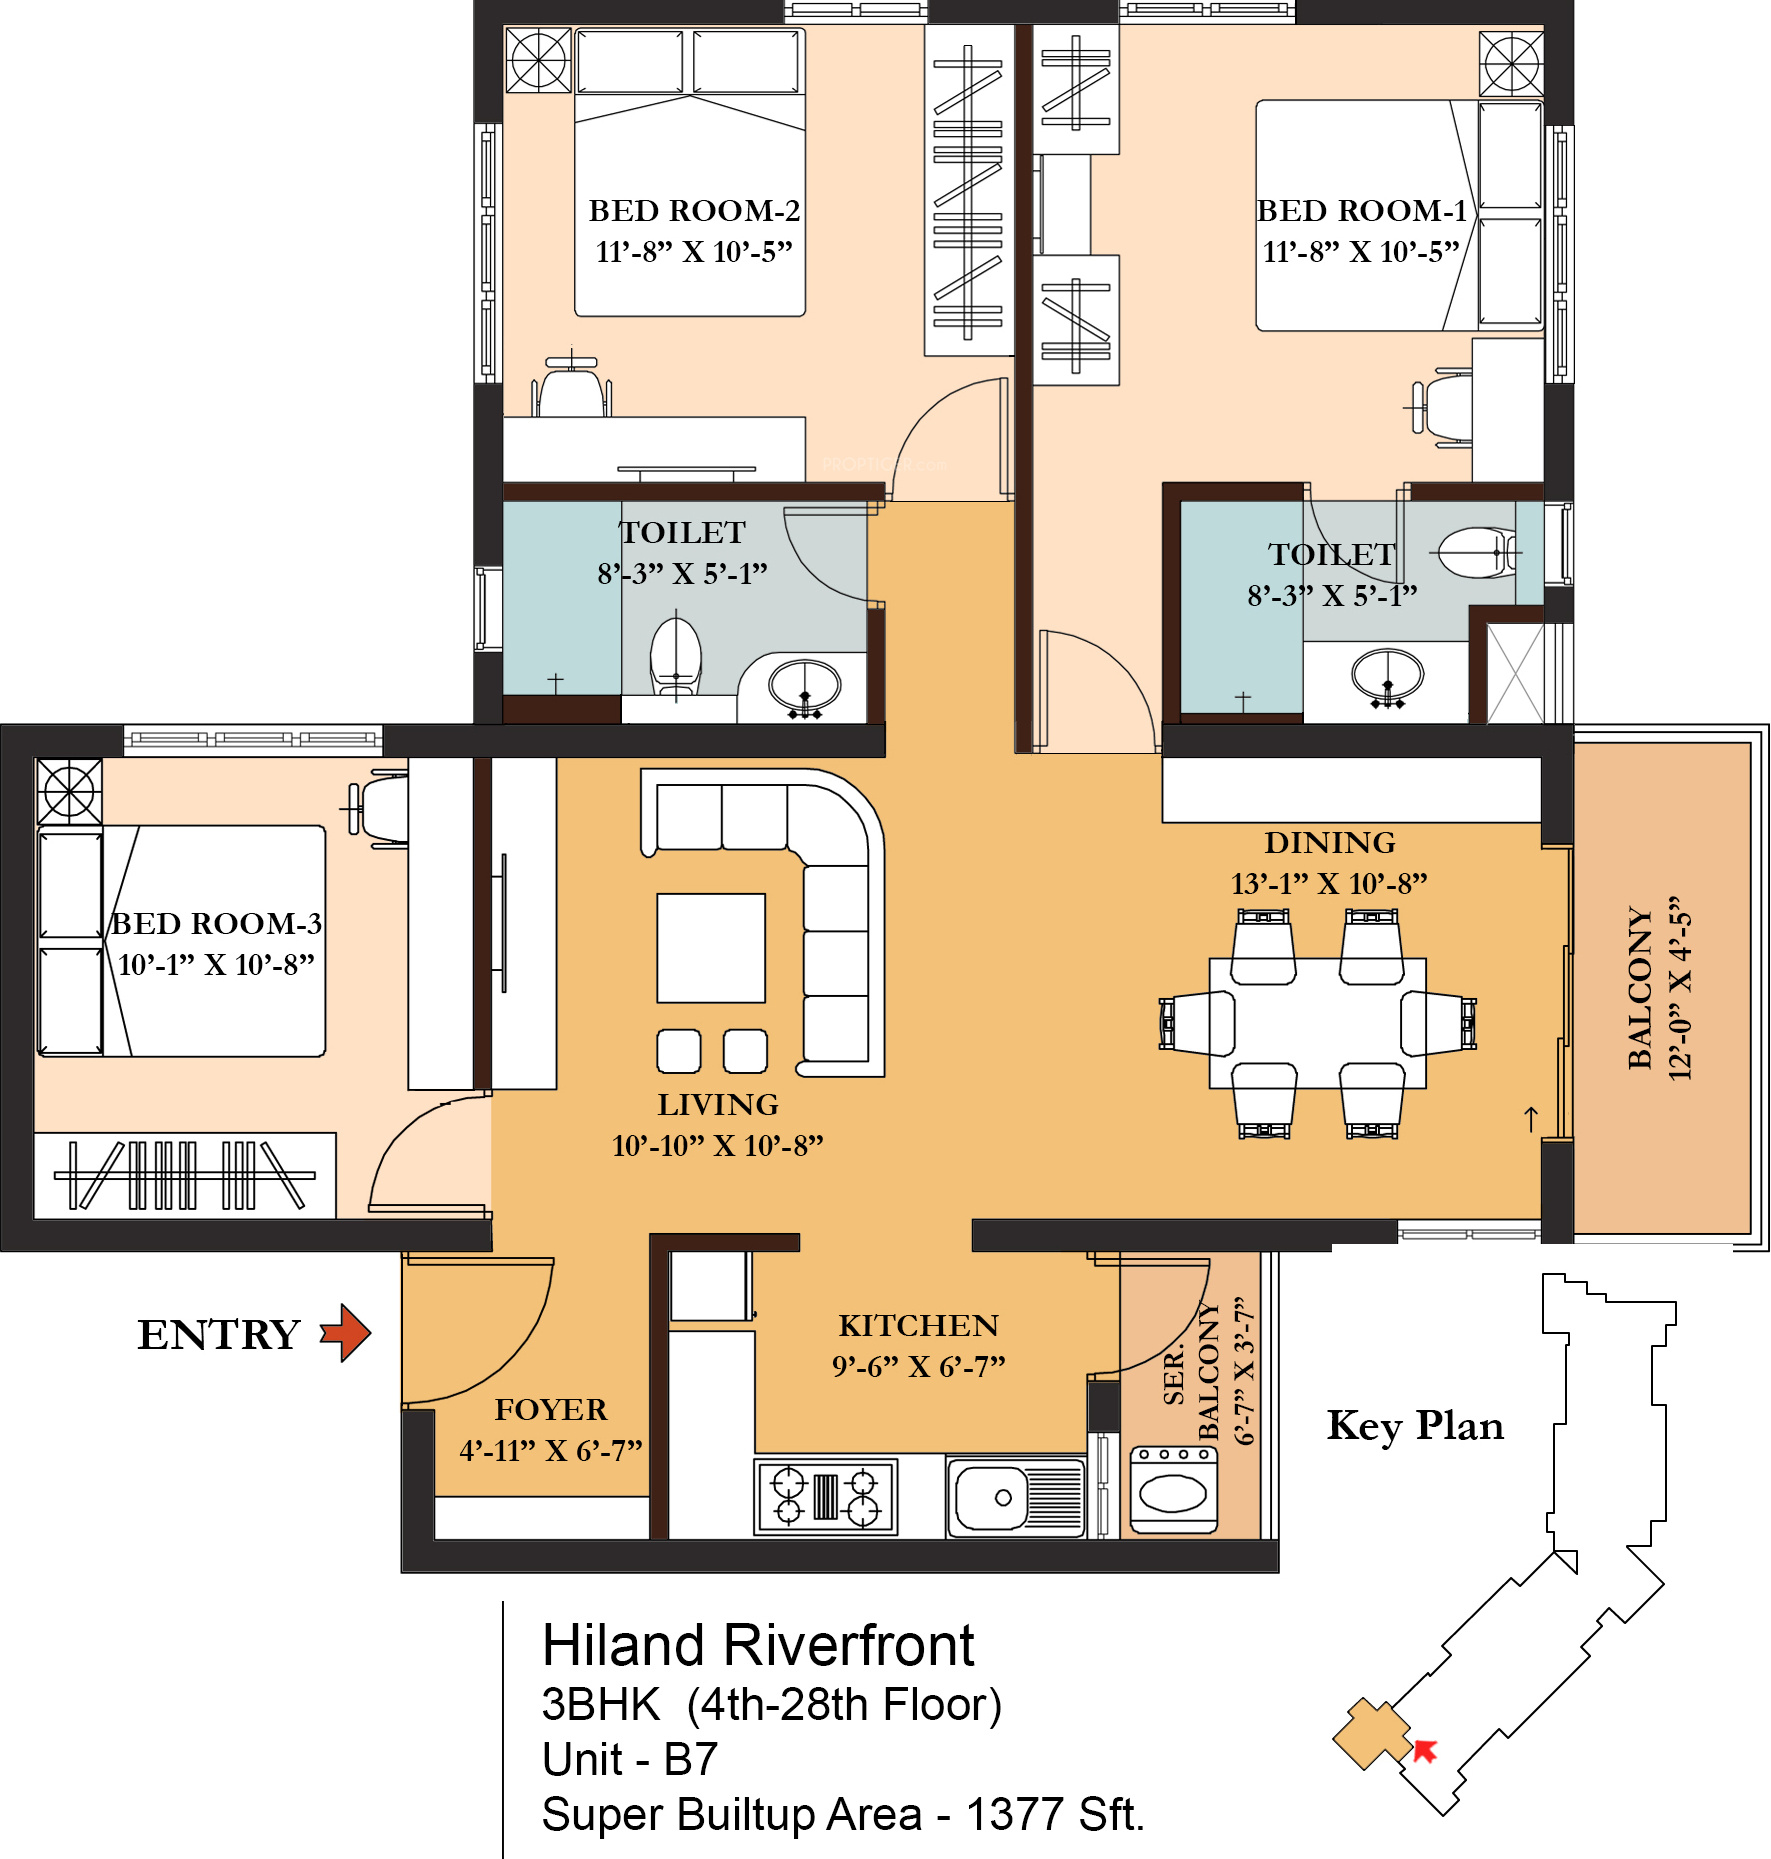 10 by 10 room floor plan preferred home design for Riverfront home plans